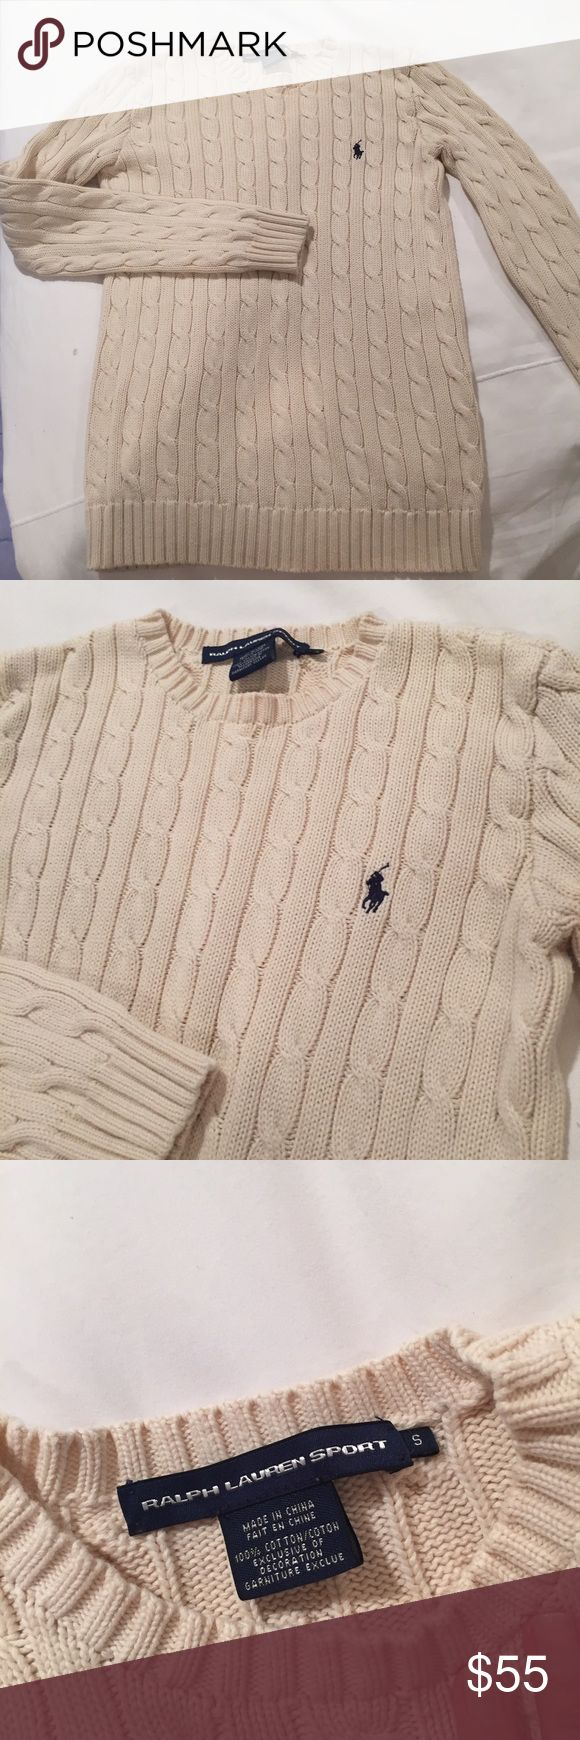 Ralph Lauren Classic Sweater Classic never goes out of style. Amazing quality! Worn once. Off white. Size small. 100% cotton. Ralph Lauren Sport. Ralph Lauren Sweaters Crew & Scoop Necks